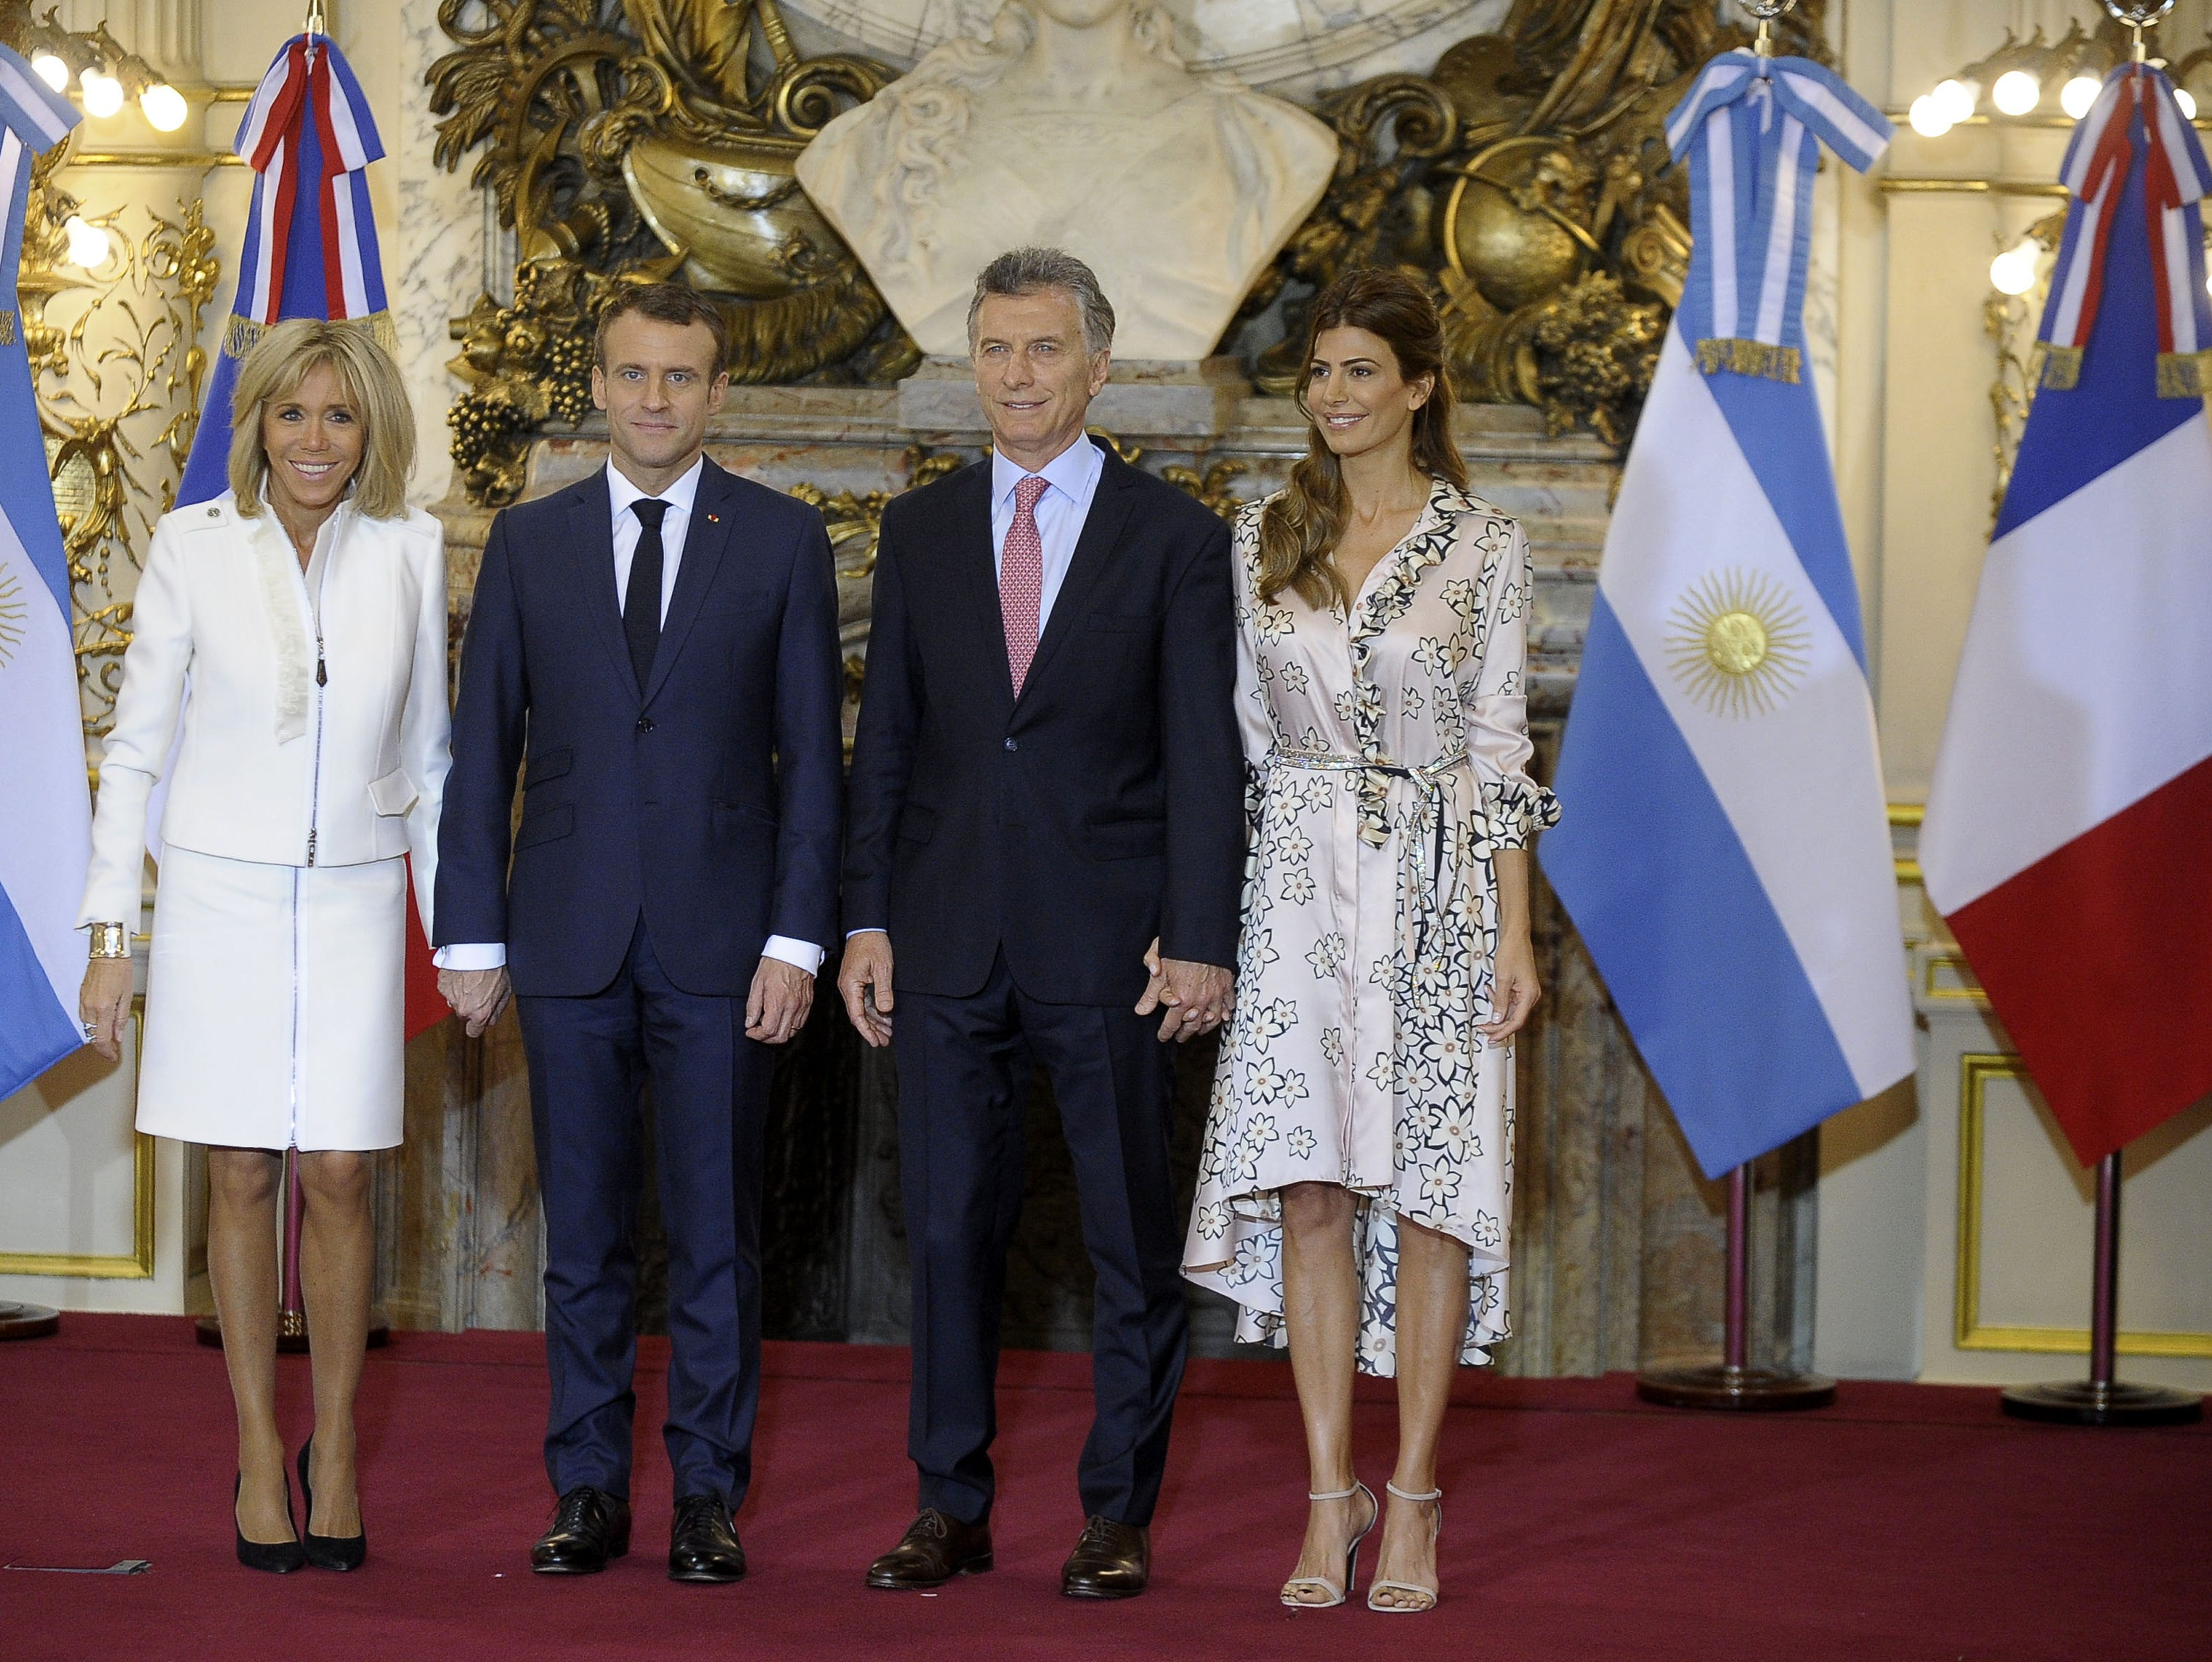 France's President Emmanuel Macron (2-L) and Argentina's President Mauricio Macri (2-R) pose for pictures flanked by their wives Brigitte Macron (L), and Juliana Awada respectively, during a welcome ceremony at the Casa Rosada presidential palace in Buenos Aires, on November 29, 2018, on the eve of the G20 Leaders' Summit. - Global leaders gather in the Argentine capital for a two-day G20 summit beginning on Friday likely to be dominated by simmering international tensions over trade. (Photo by Javier Gonzalez TOLEDO / AFP)        (Photo credit should read JAVIER GONZALEZ TOLEDO/AFP/Getty Images)